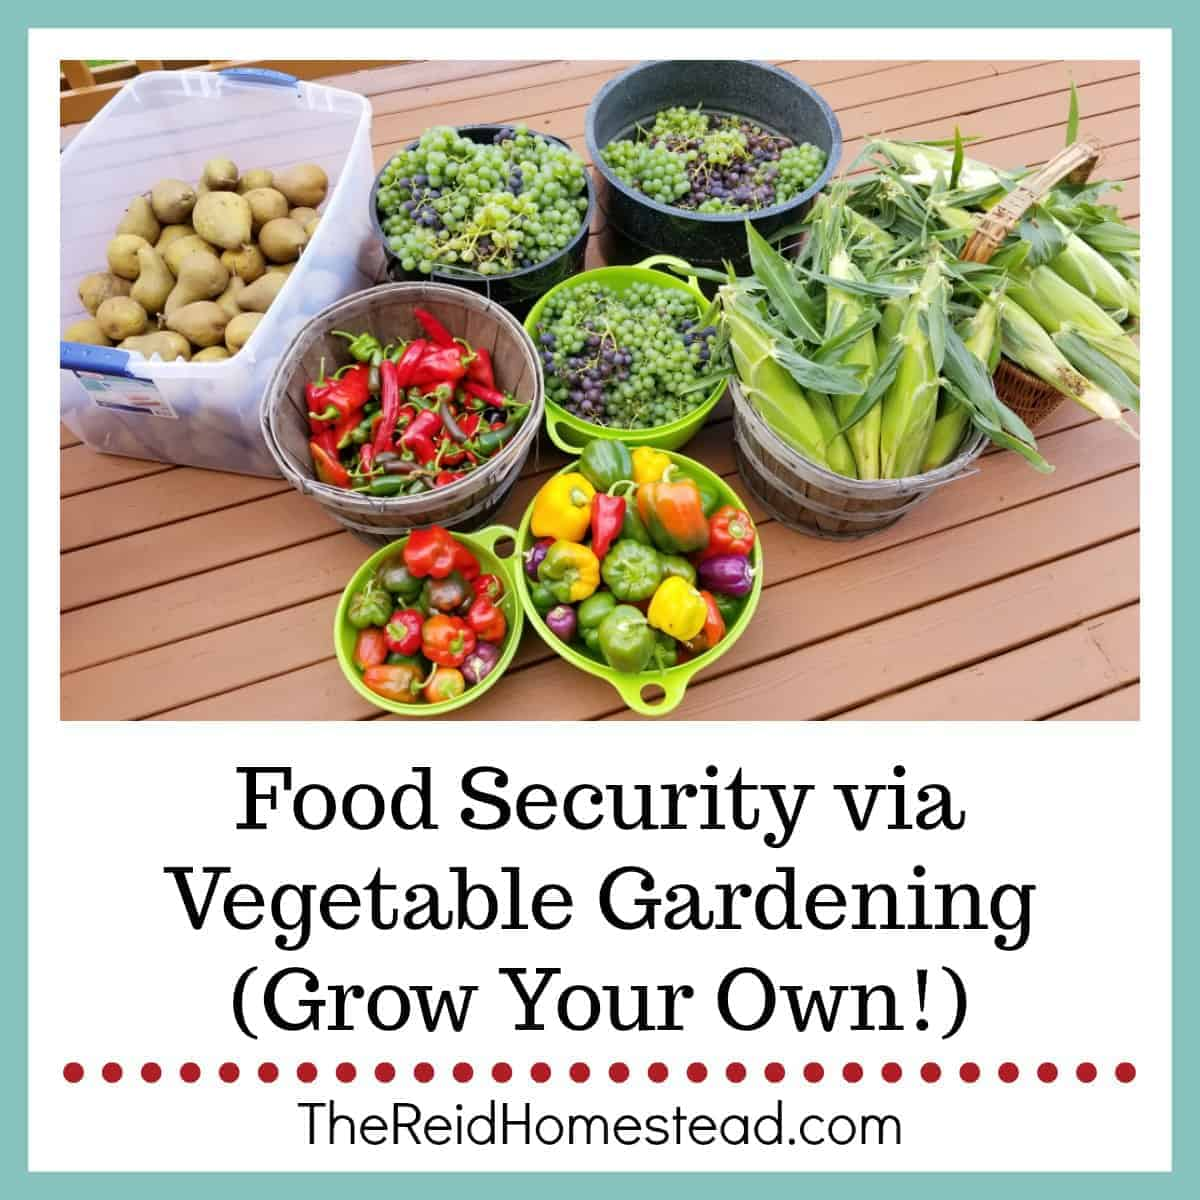 Food Security via Vegetable Gardening